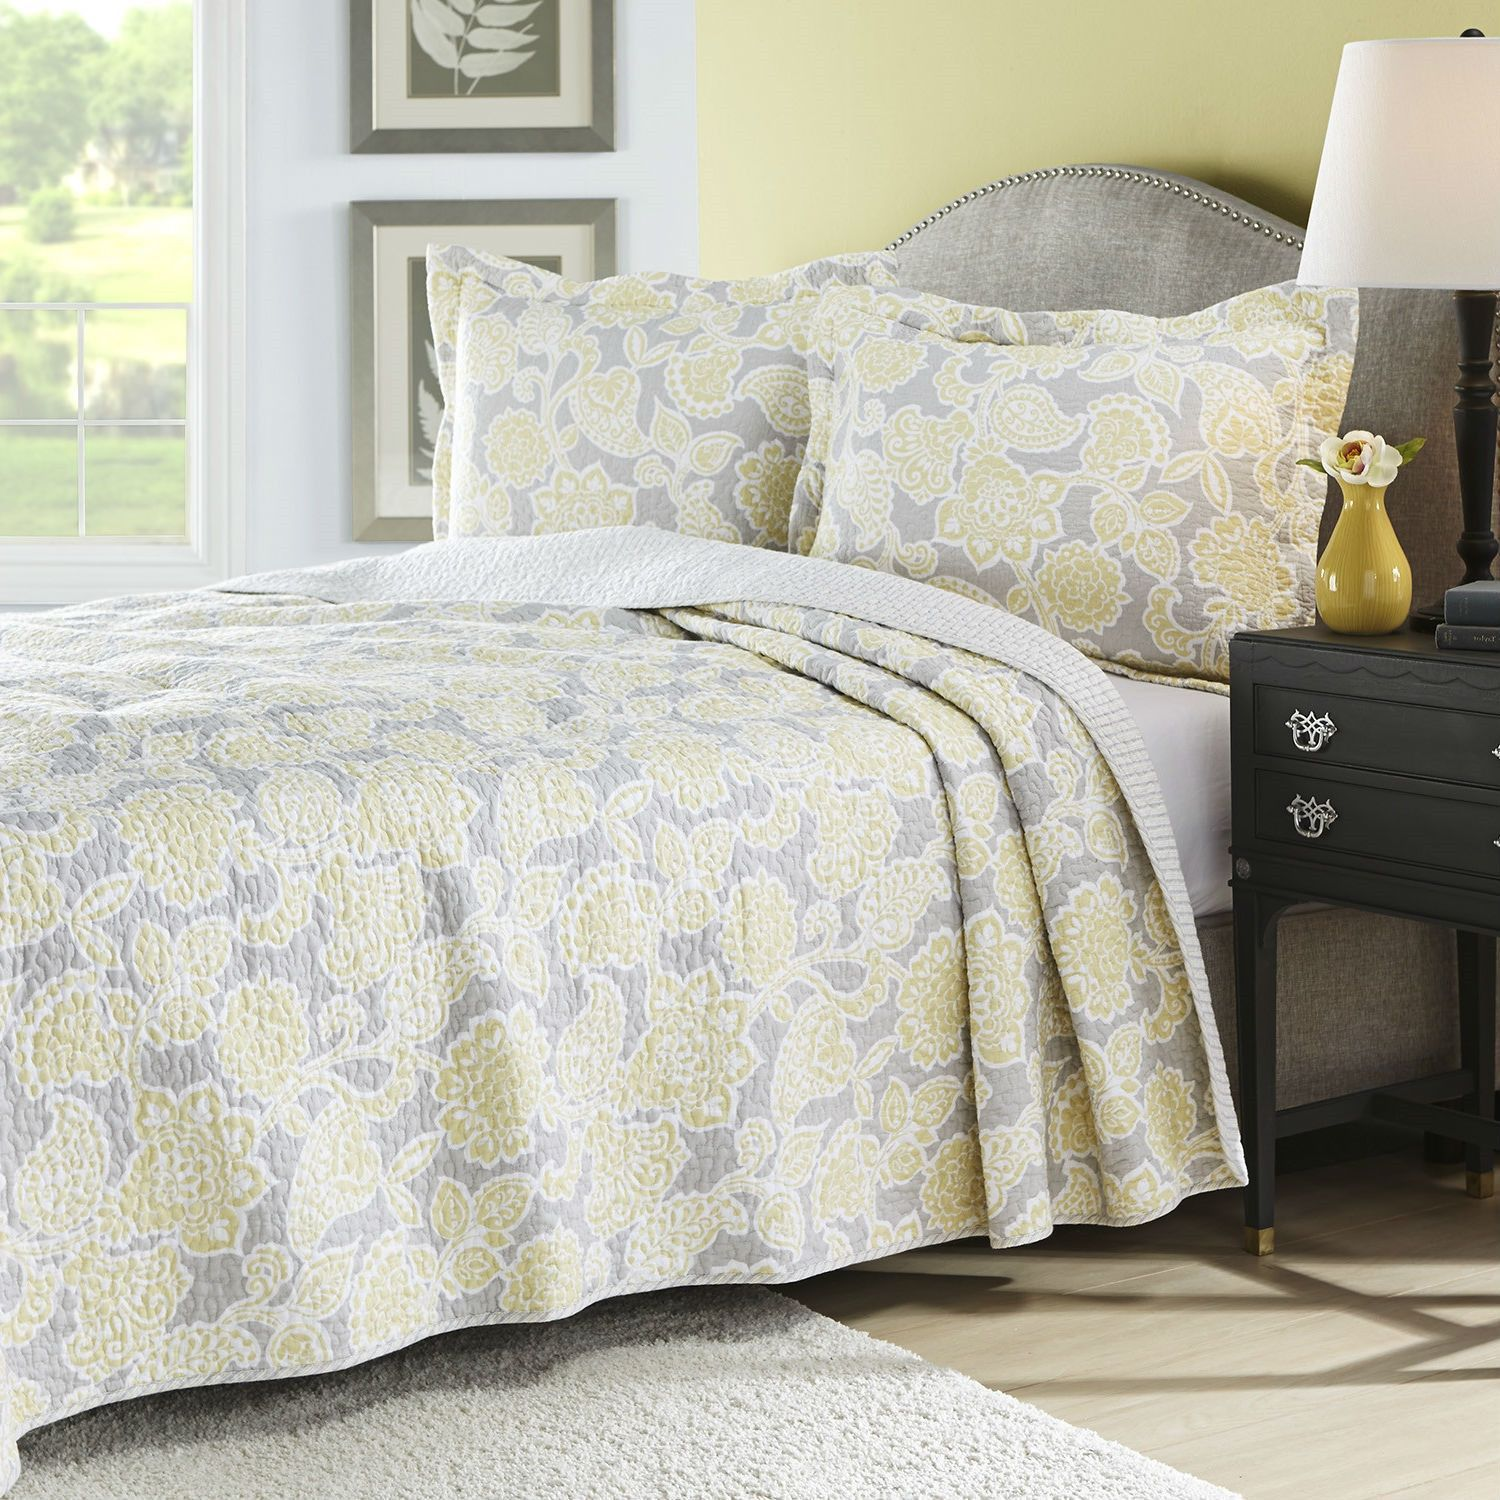 twin yellow gray floral 100 cotton reversible quilt coverlet set